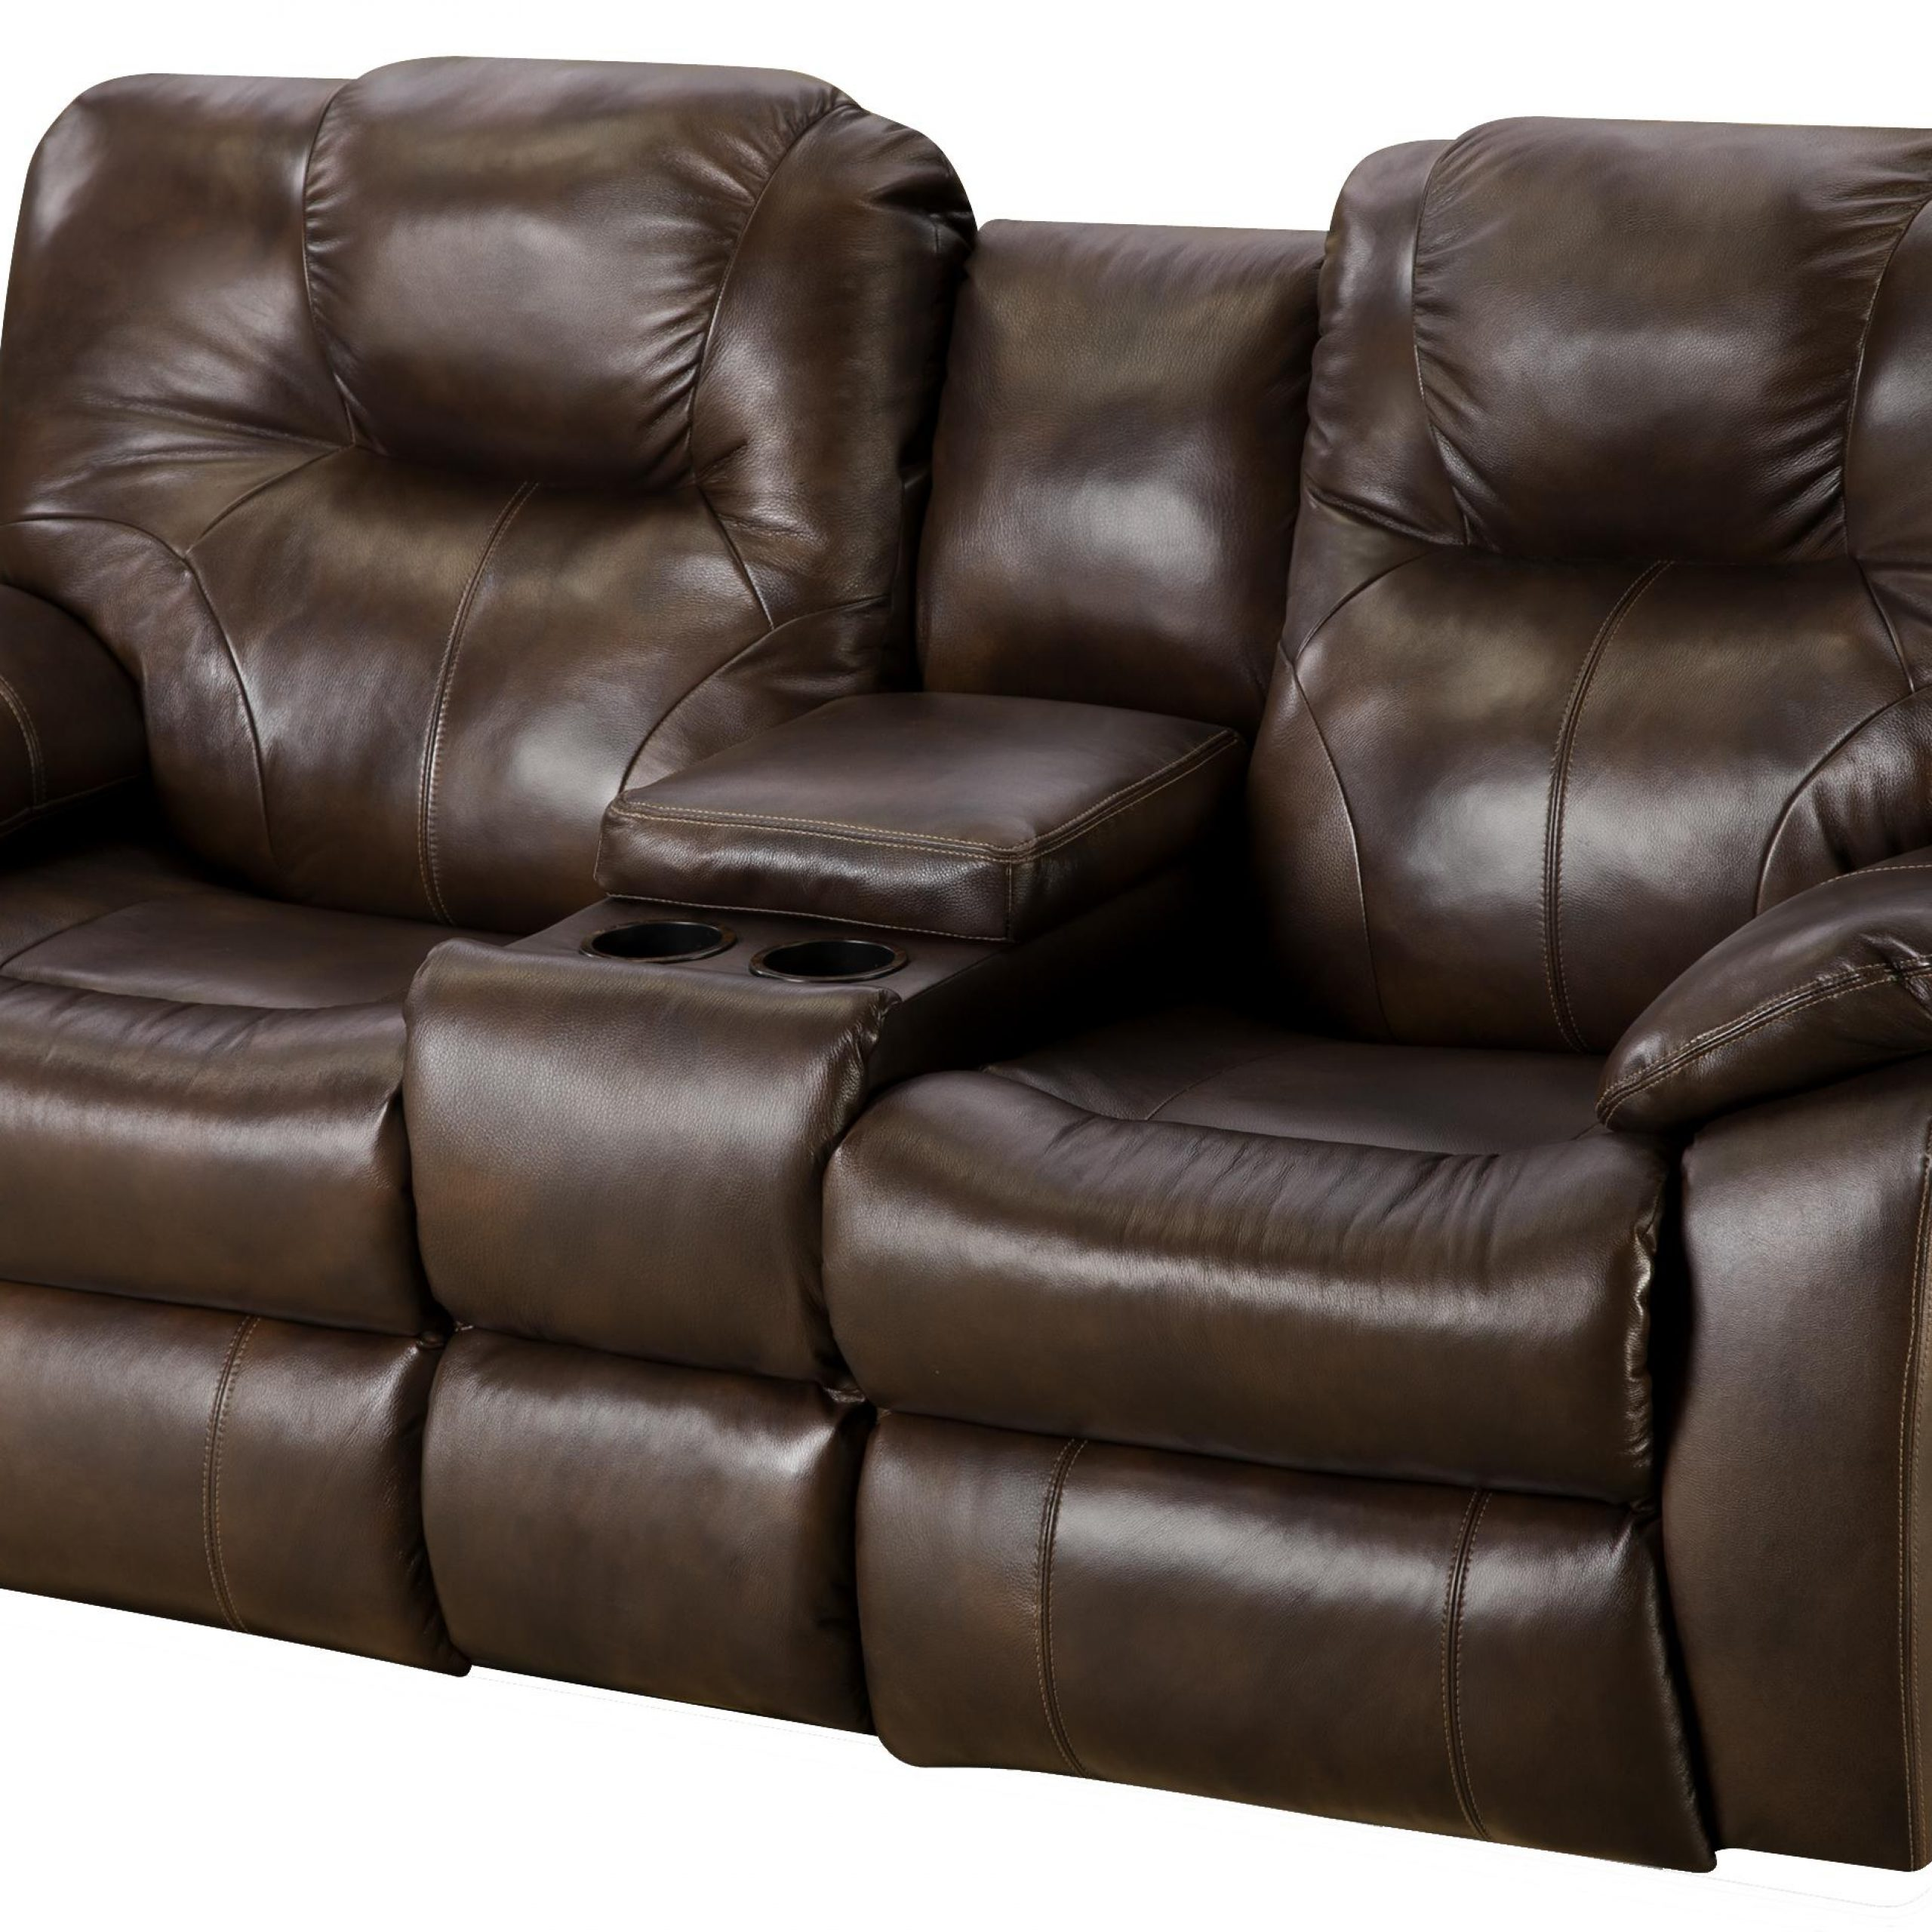 Power Reclining Sofa With Consolesouthern Motion Intended For Trendy Raven Power Reclining Sofas (View 16 of 20)